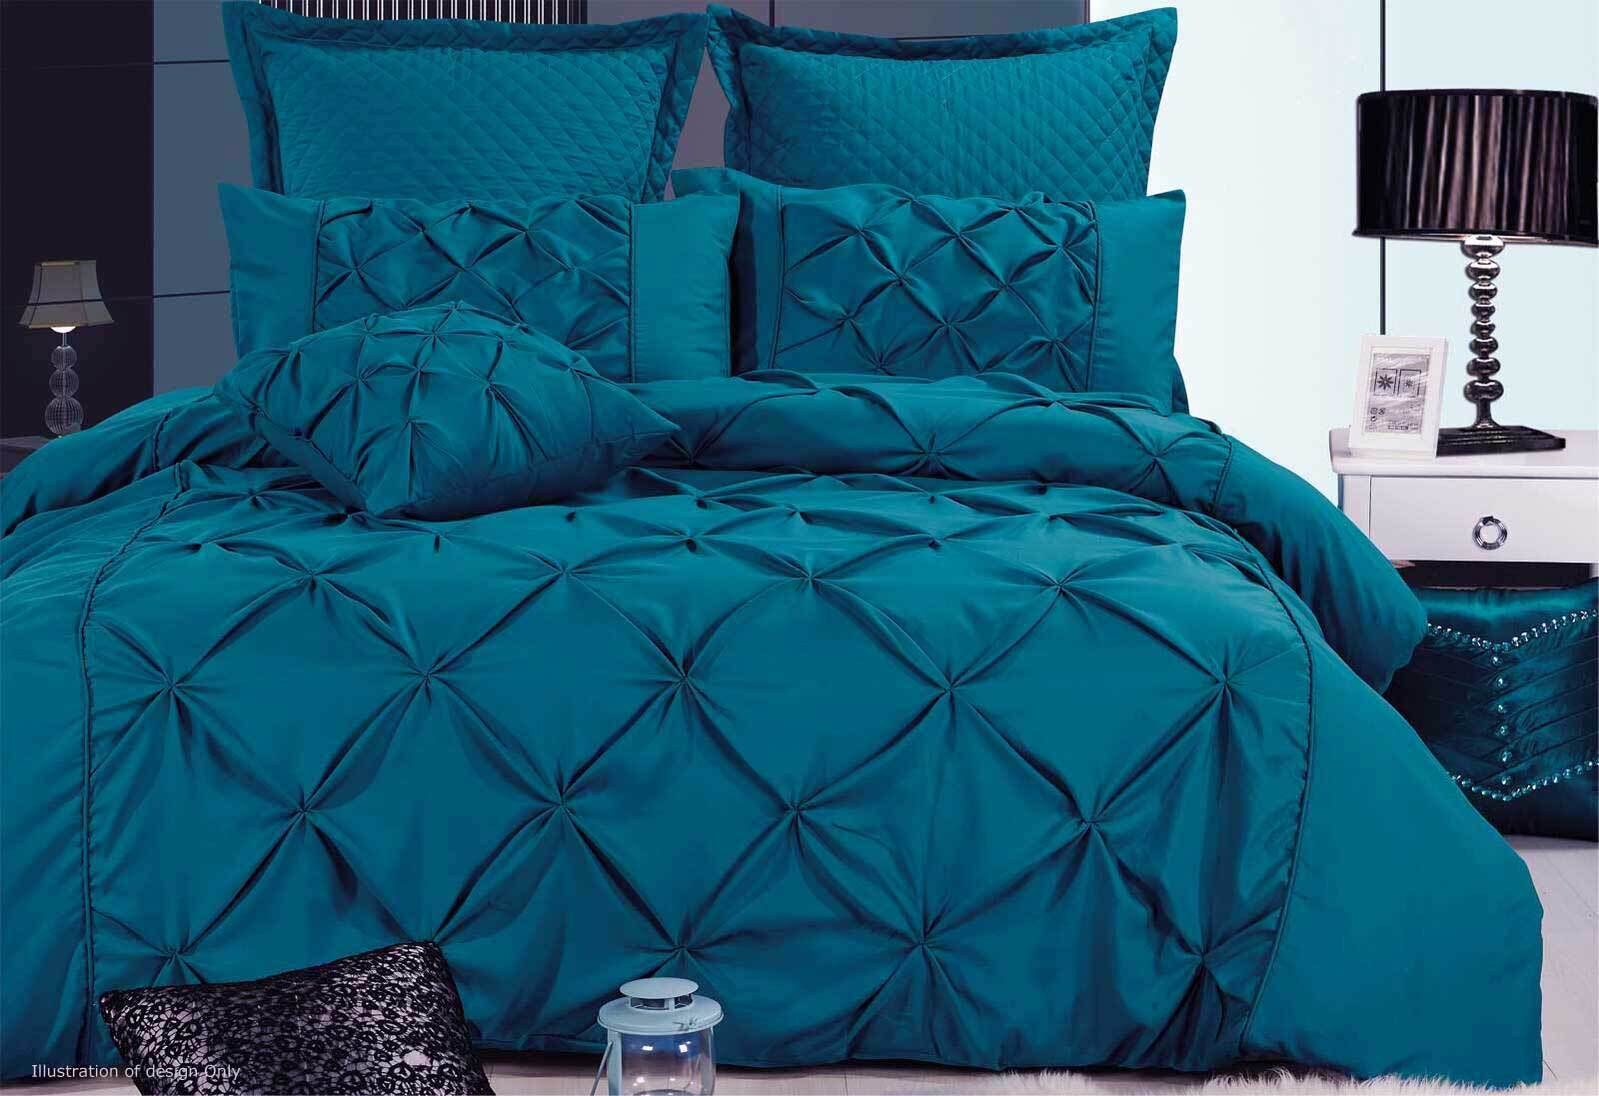 Teal Quilt Cover Luxton Fantine Teal Green Quilt Cover Set In King / Queen